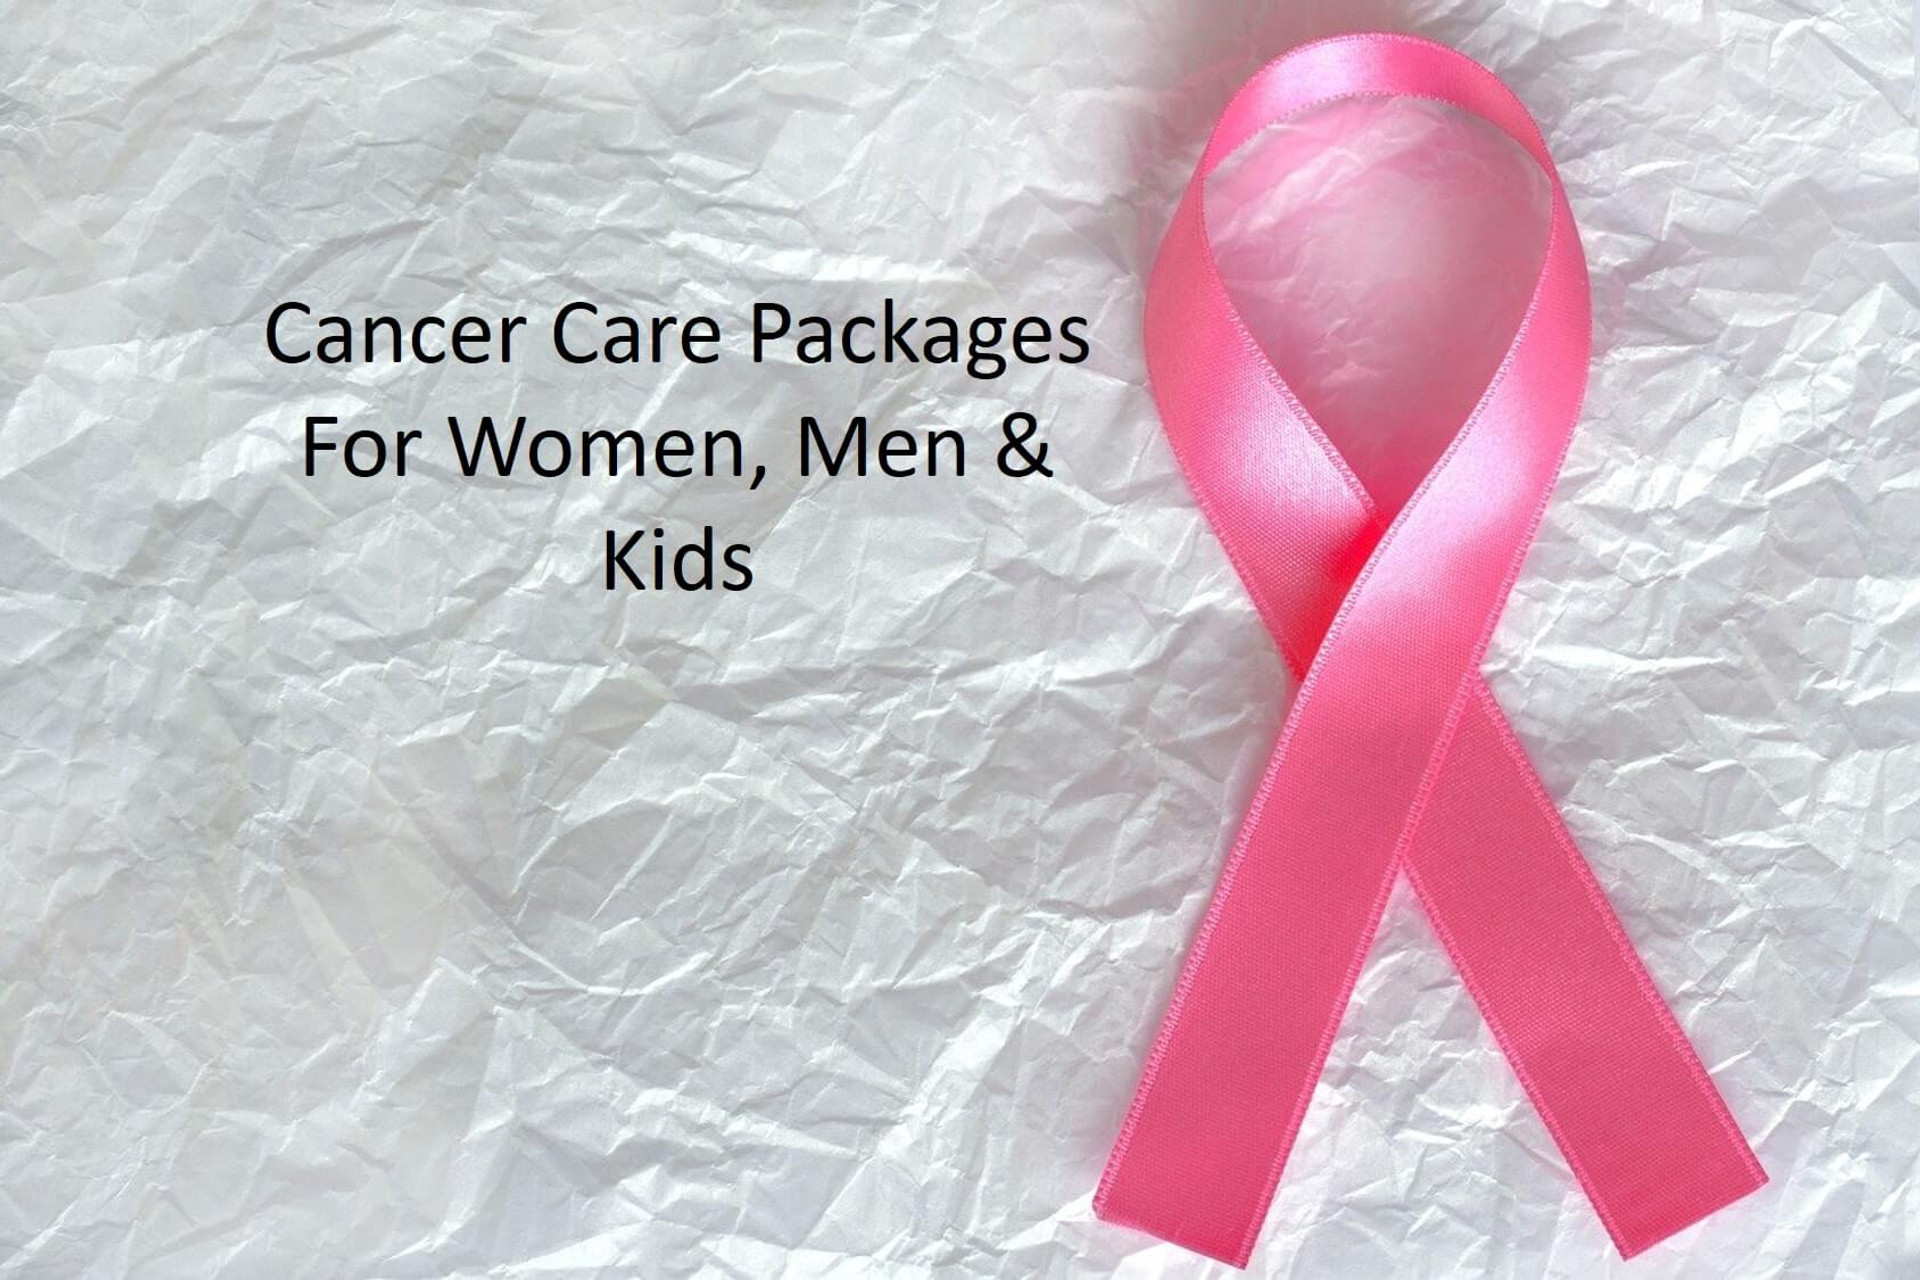 Cancer Care Packages